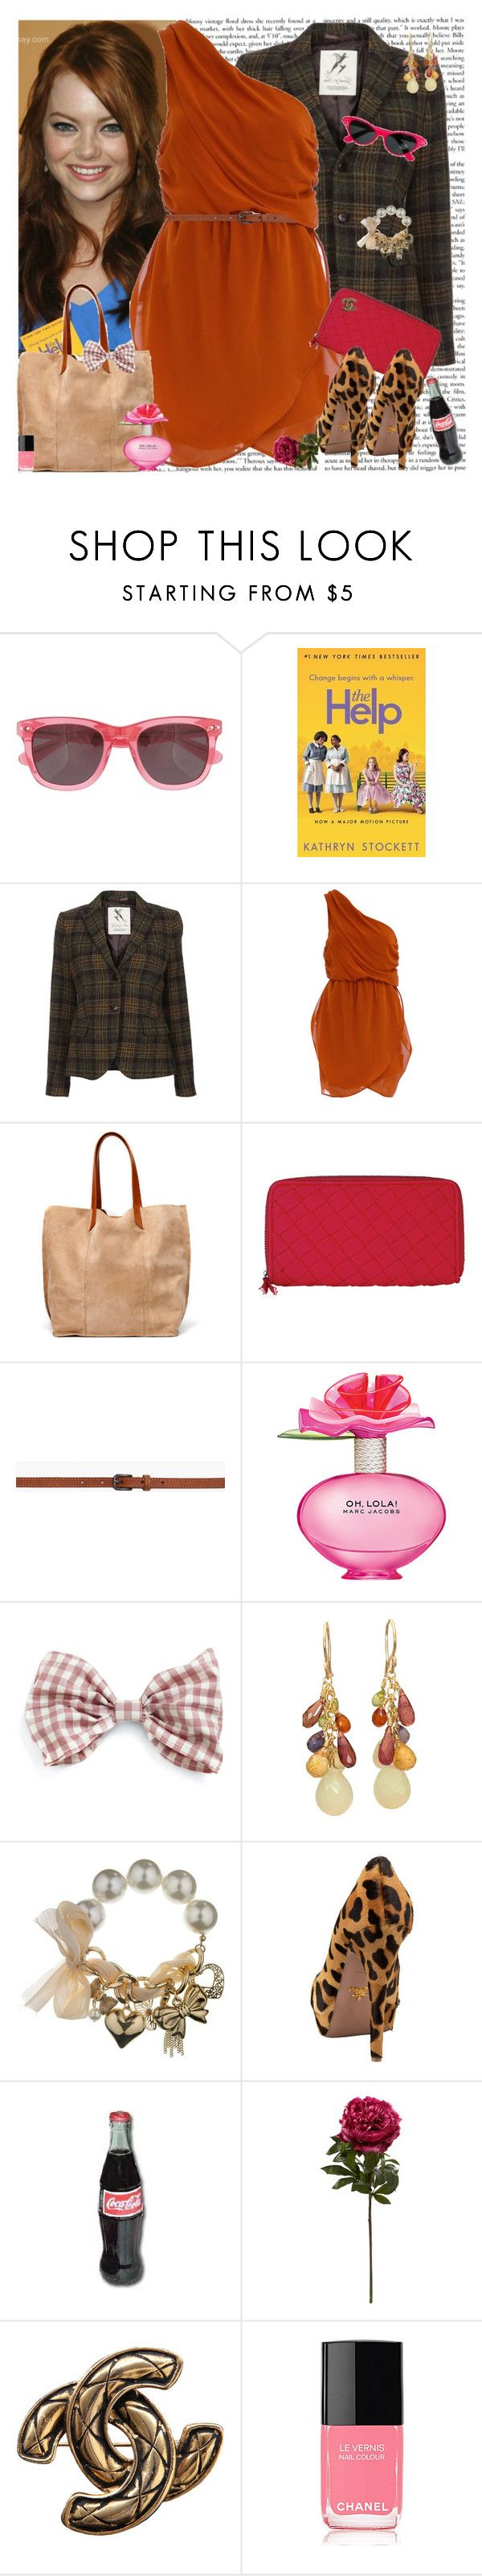 """The Help.. Movie in Theaters Now!!"" by msfashionchick ❤ liked on Polyvore featuring Jack Wills, GANT, Dorothy Perkins, Zara, rag & bone, Marc Jacobs, Calico Juno Designs, Prada and Chanel"